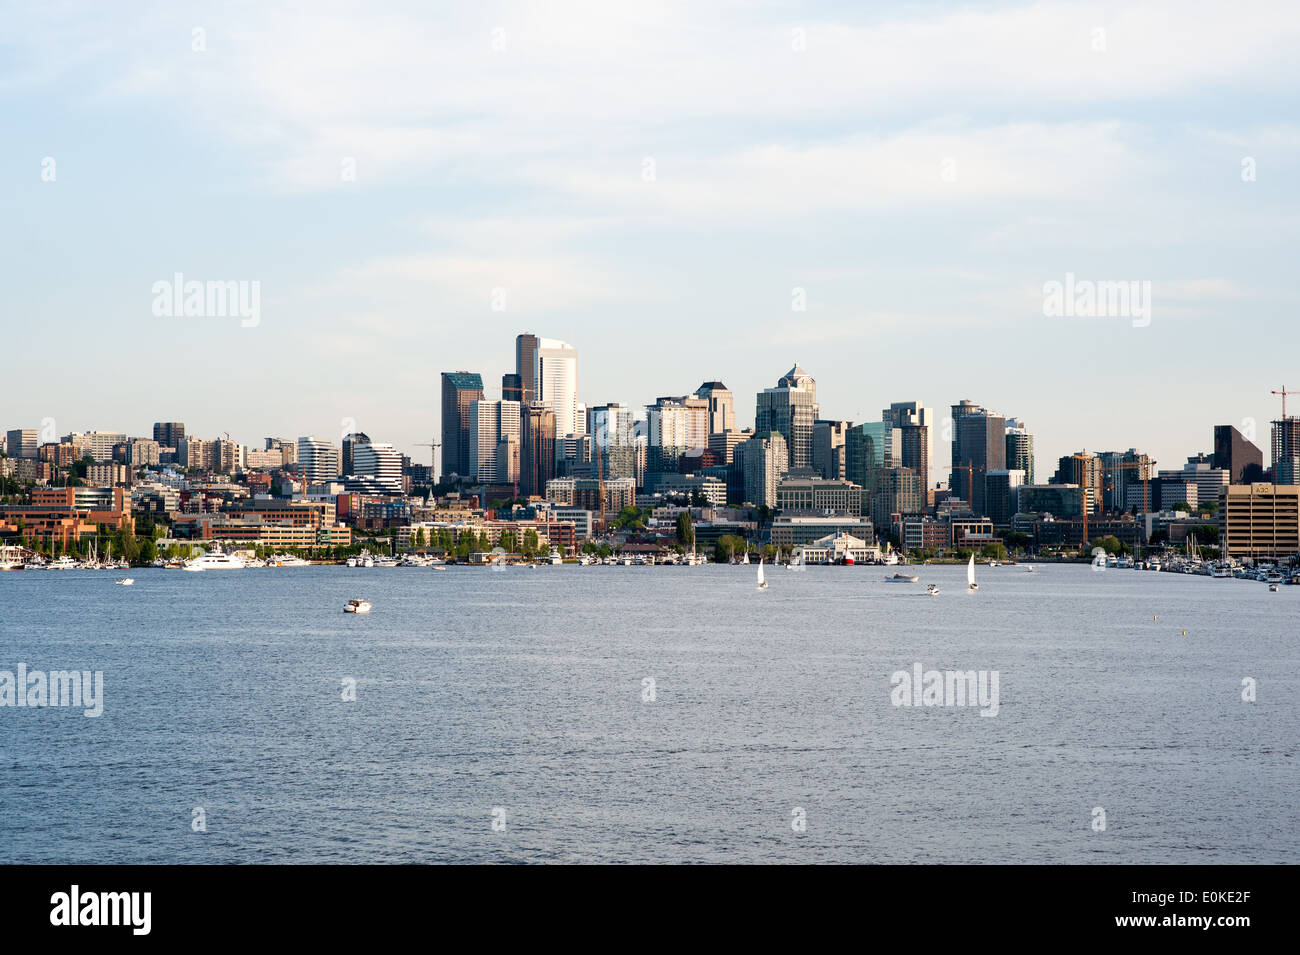 A late afternoon view of Seattle with Lake Union in the foreground. - Stock Image